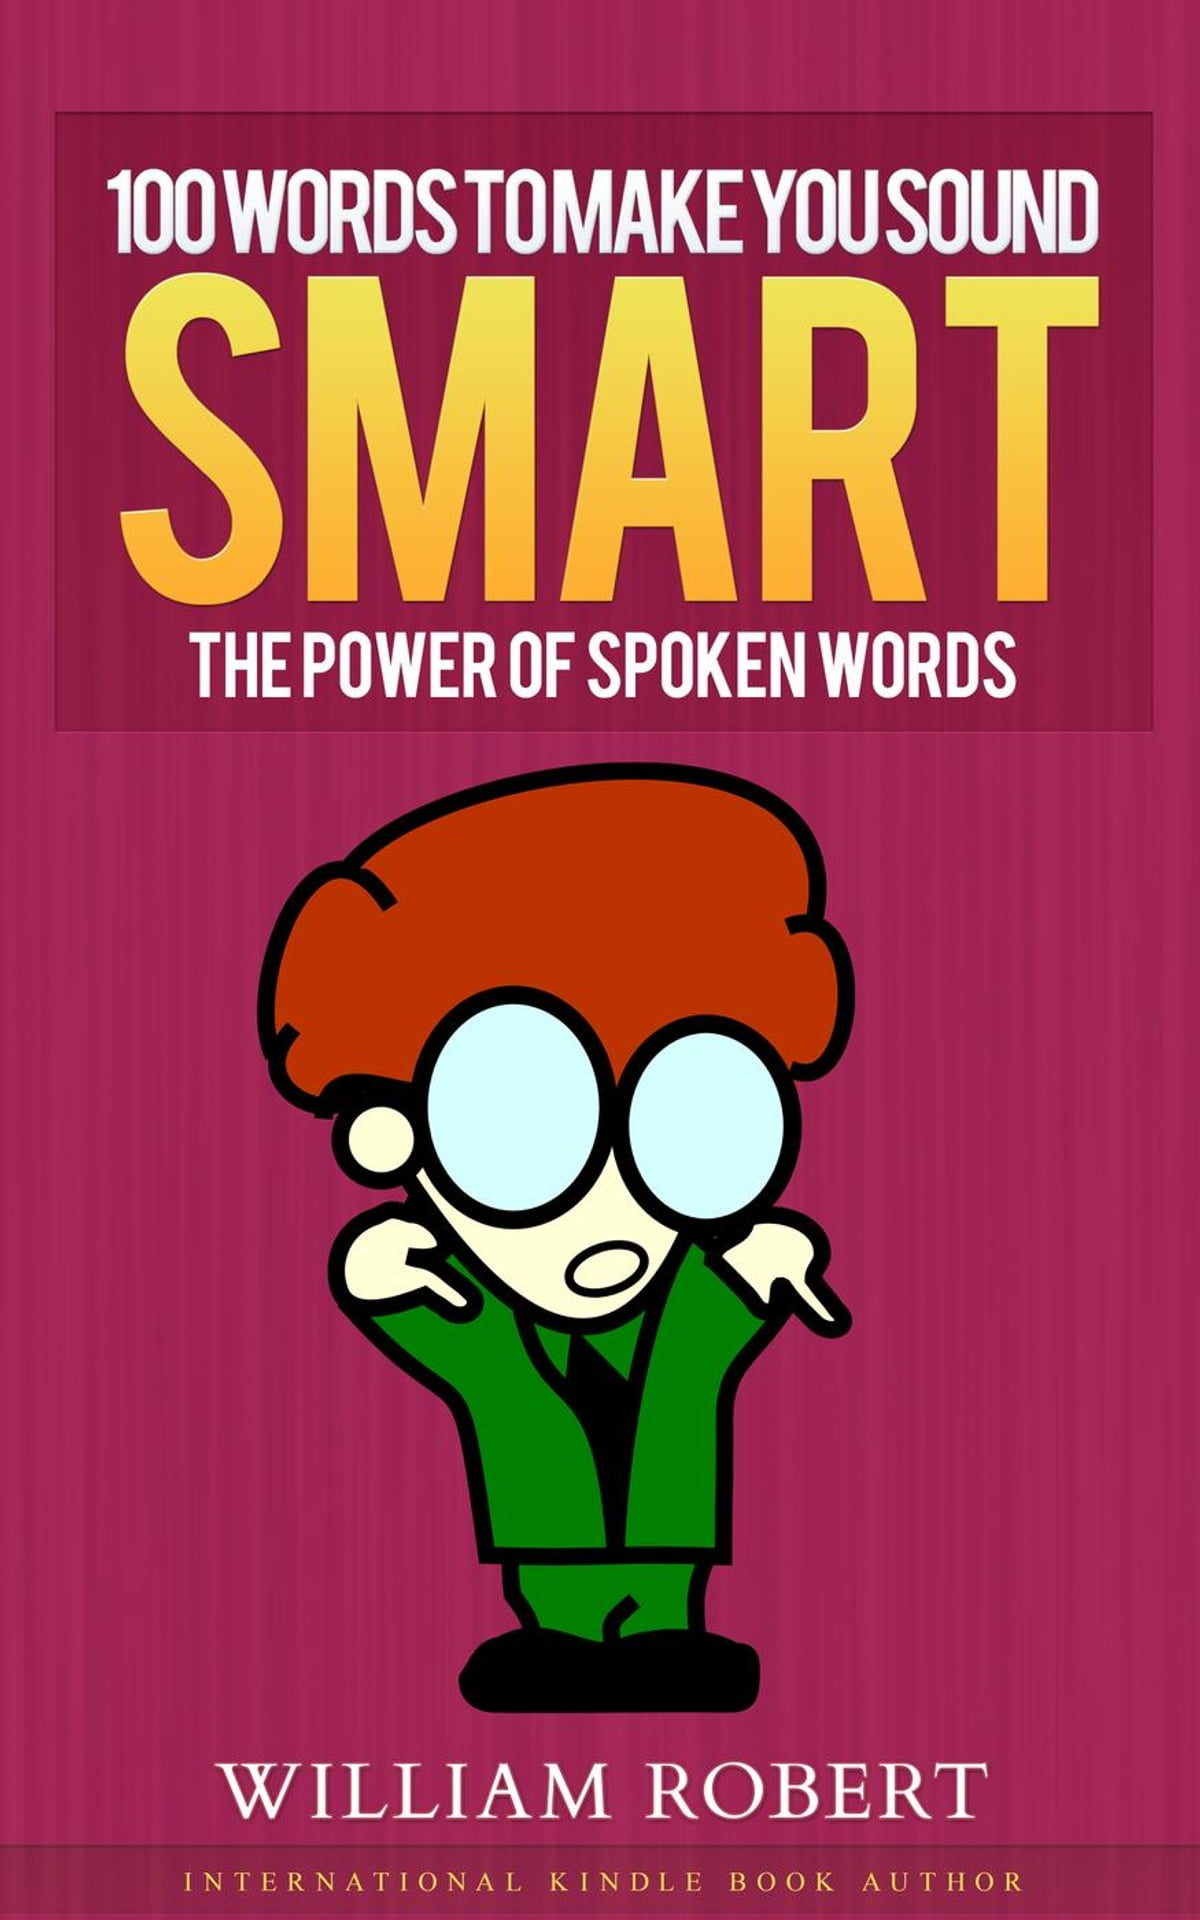 100 Words To Make You Sound Smart: The Power of Spoken Words eBook by  William Robert - 9781516372720 | Rakuten Kobo